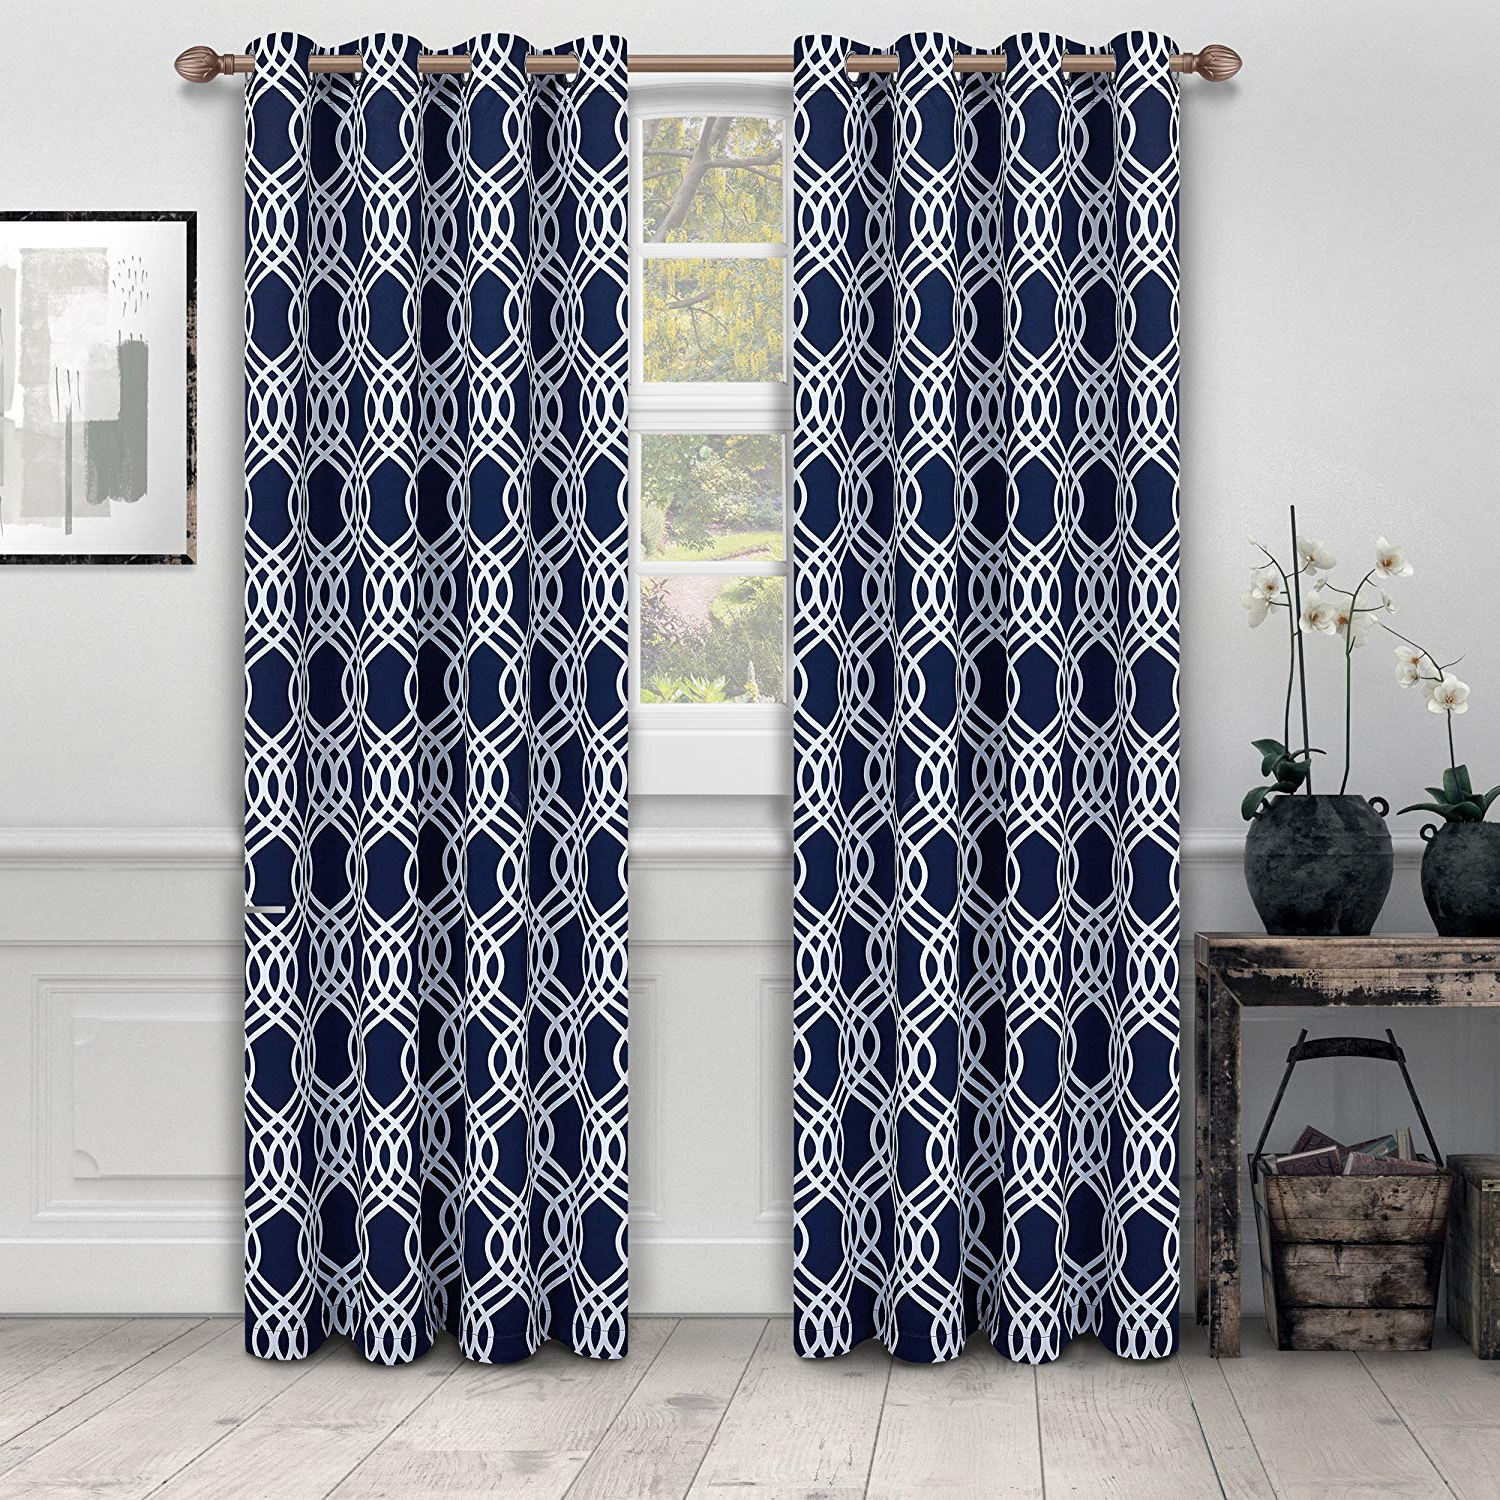 """Superior Solid Insulated Thermal Blackout Grommet Curtain Panel Pairs For Preferred Superior Ribbon Collection Quality Soft, Insulated, Thermal, Woven Blackout  Grommet Printed Curtain Panel Pair (Set Of 2) 52"""" X 63"""" – Grey (View 17 of 20)"""